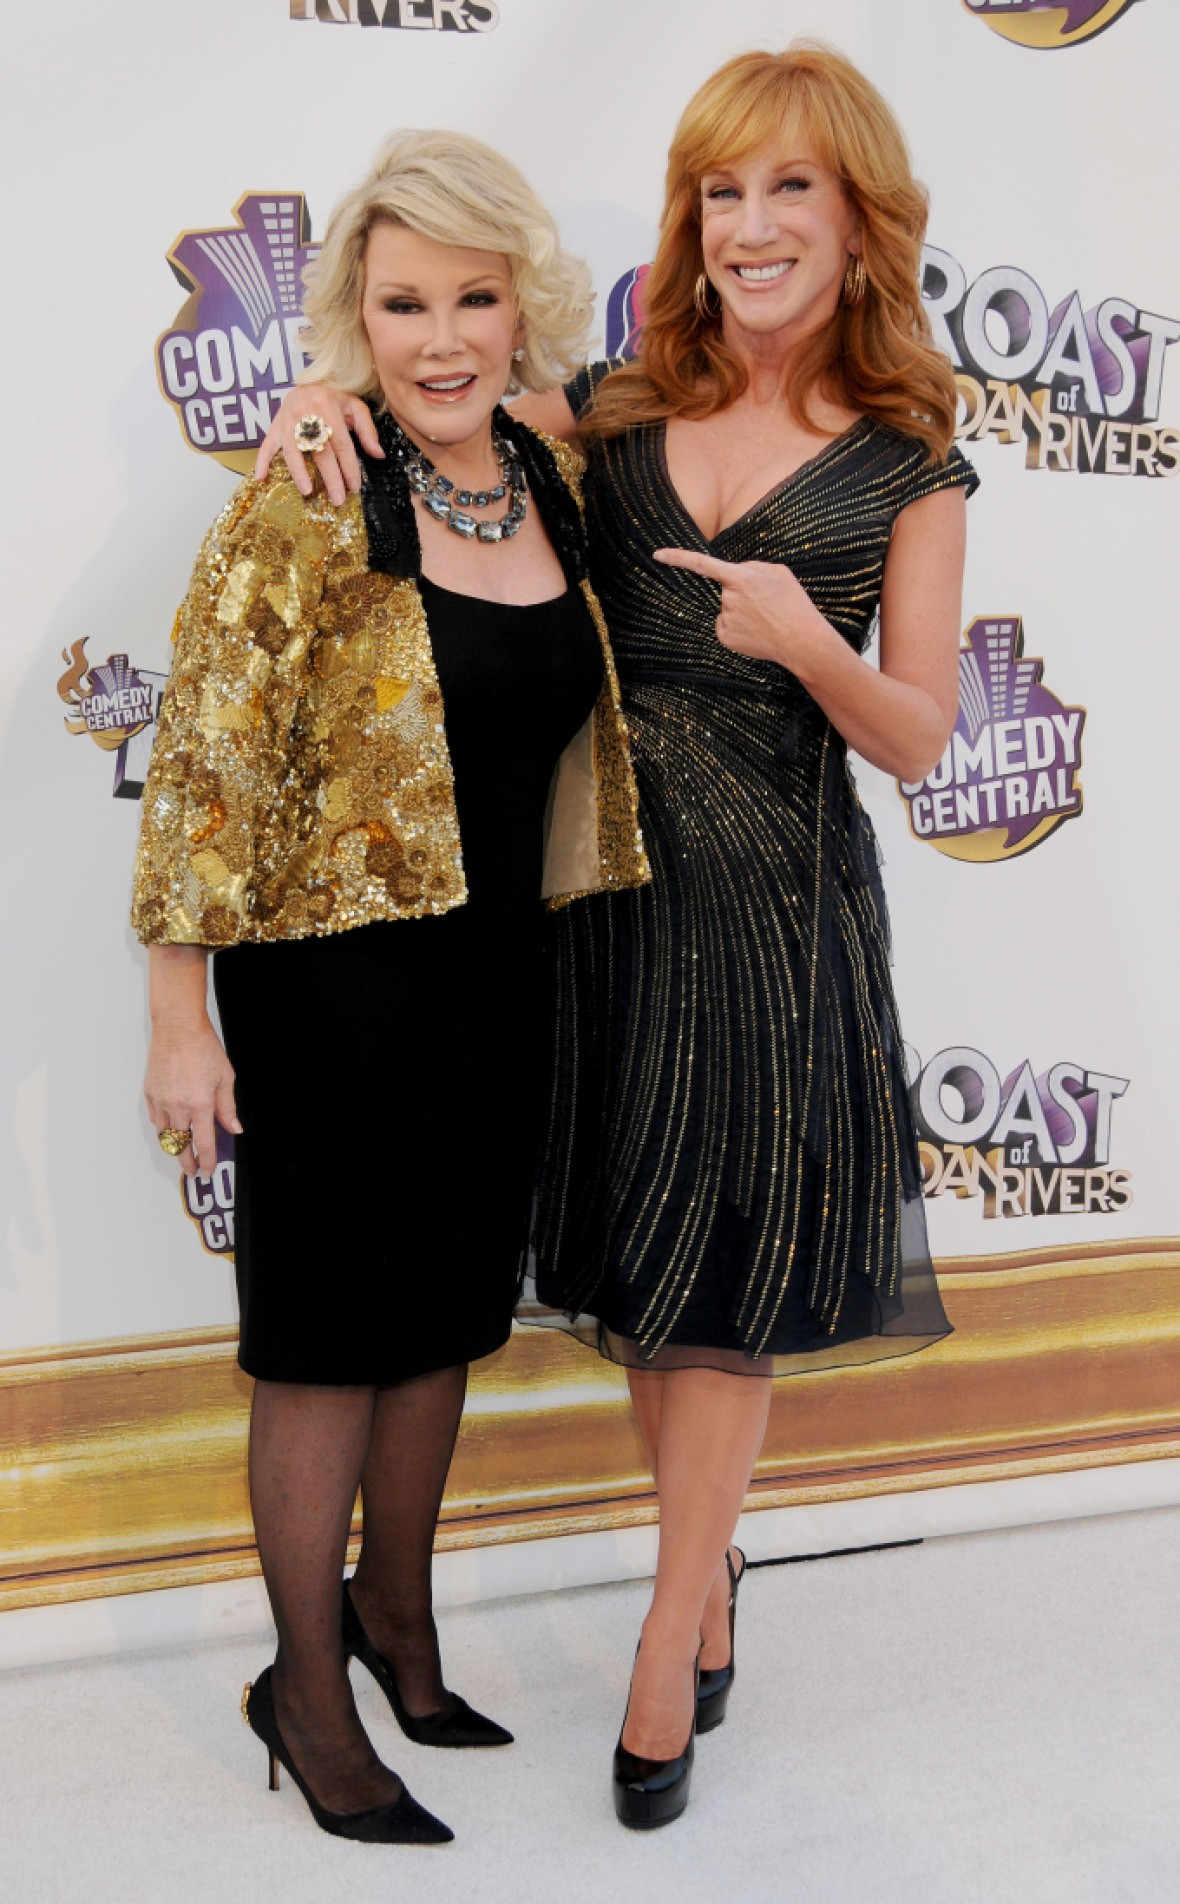 kathy griffin & joan rivers